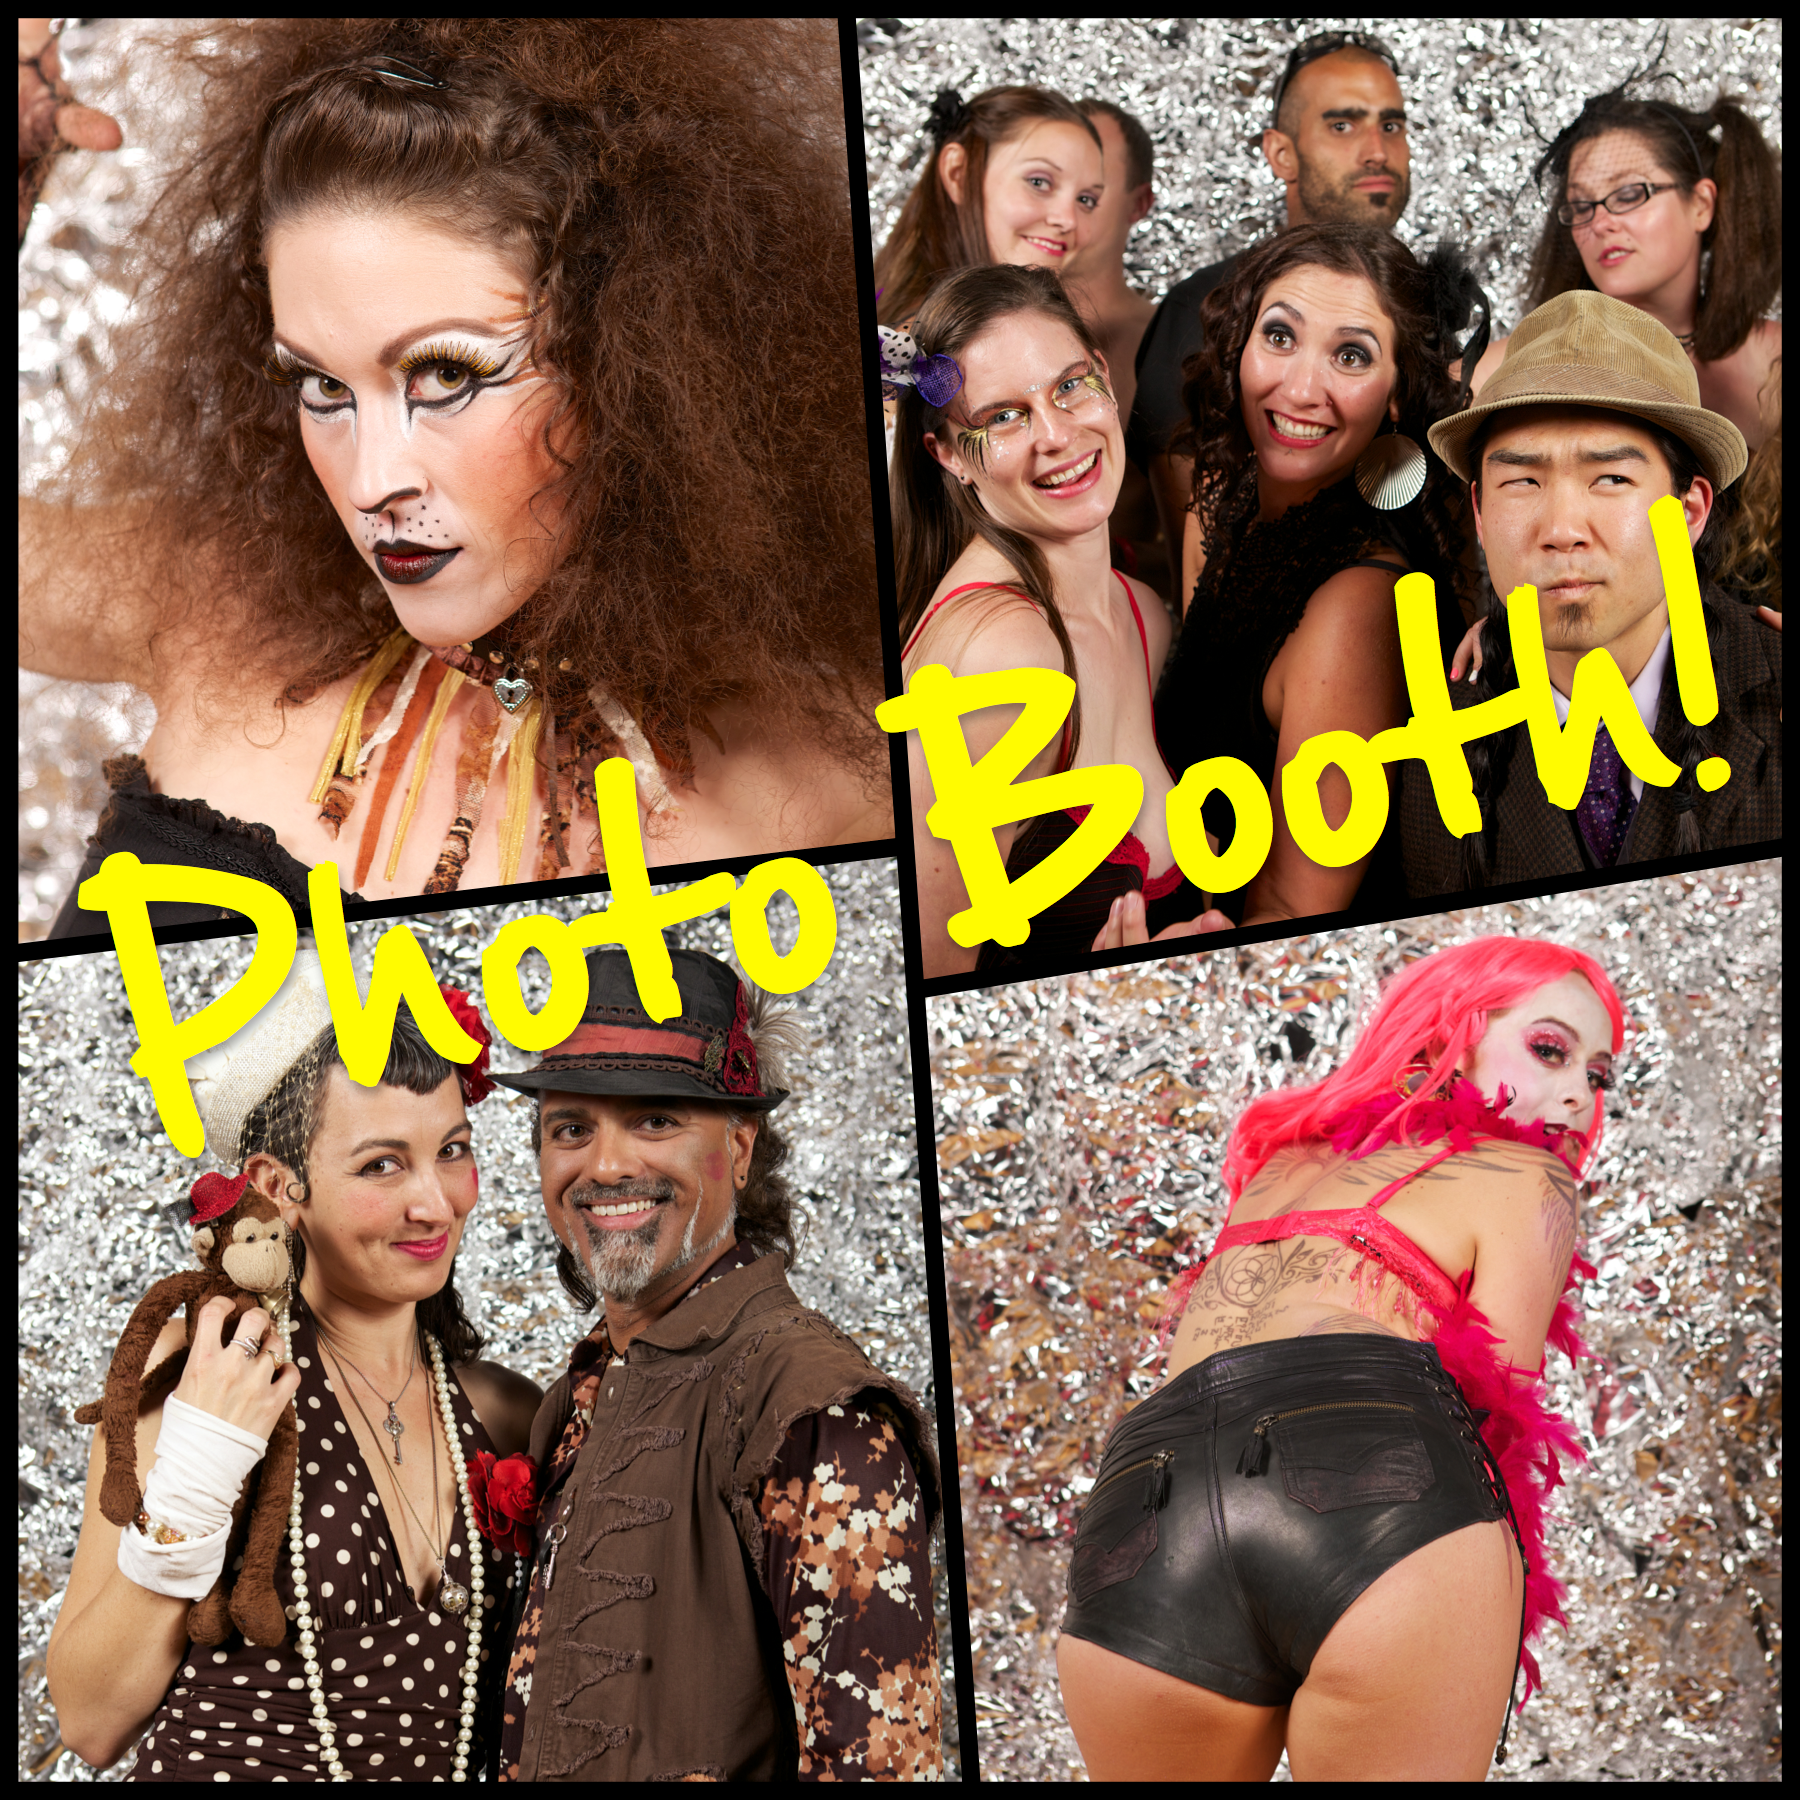 Click here to find your photo from the Photo Booth!